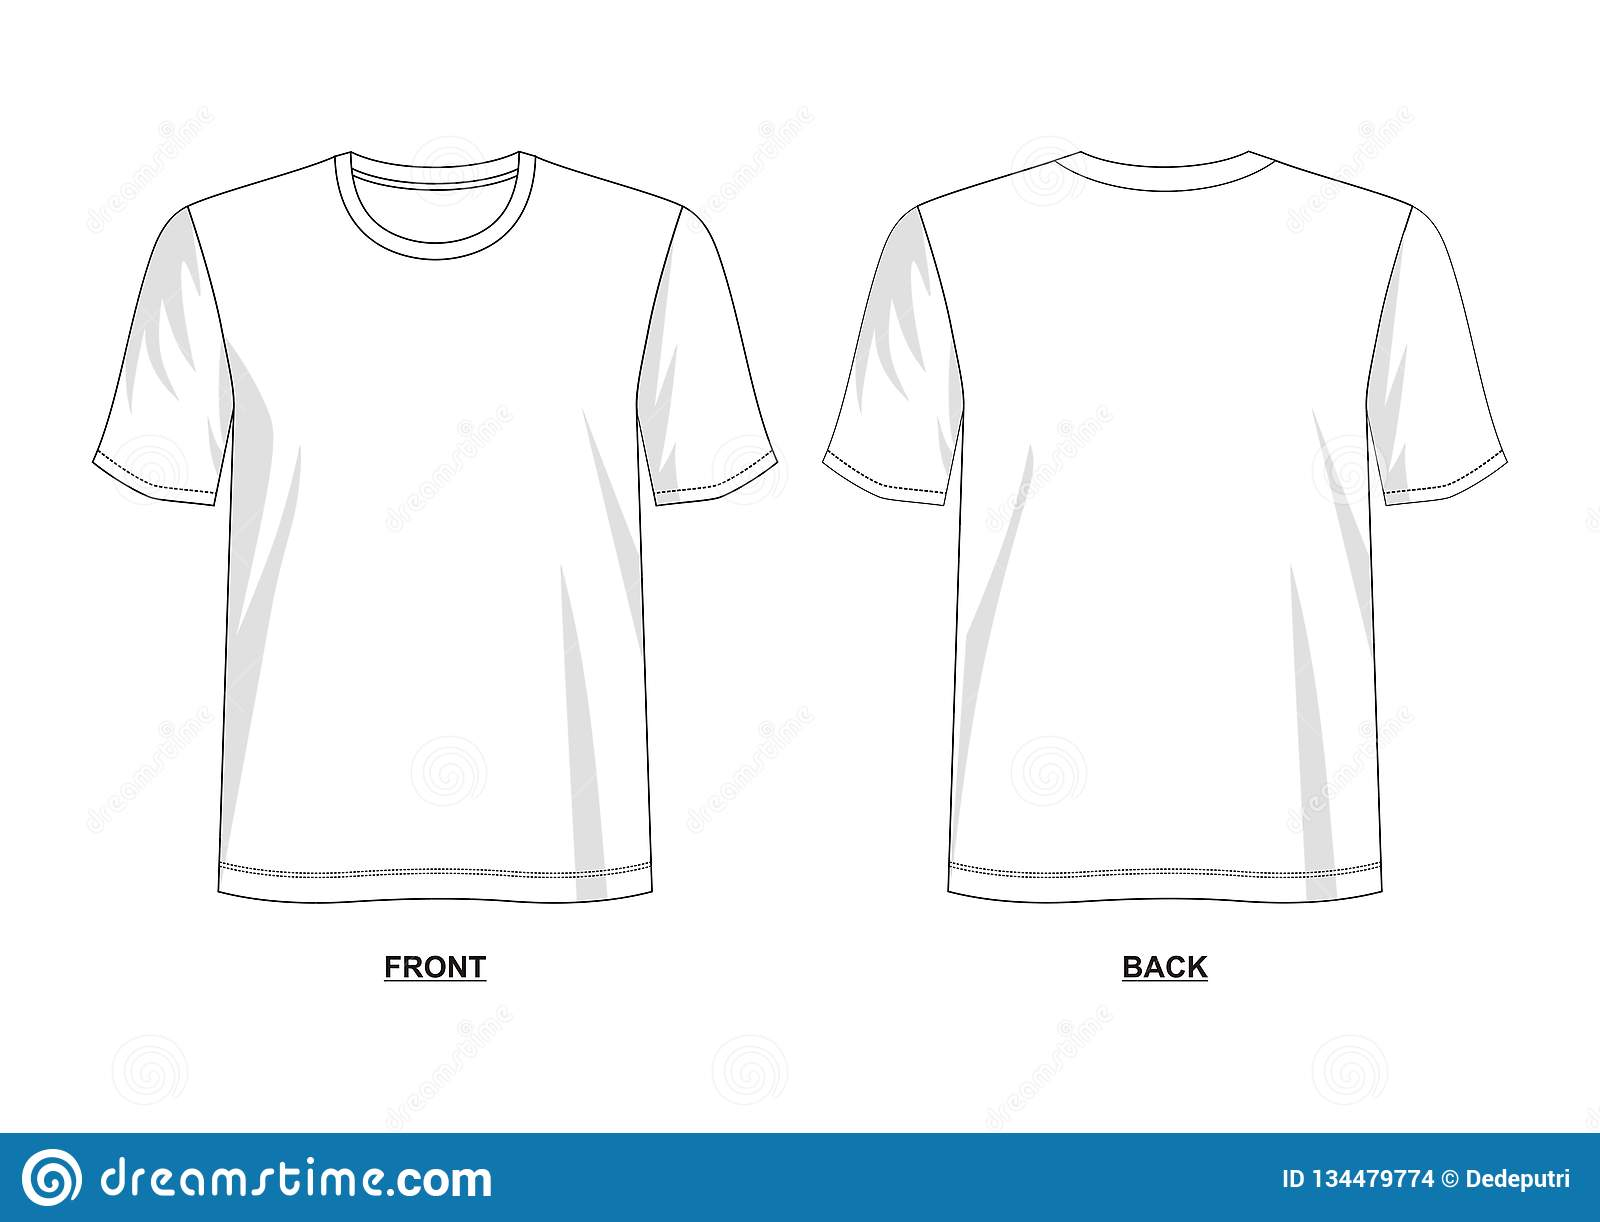 ce494c48 Design Vector T Shirt Template Stock Vector - Illustration of ...